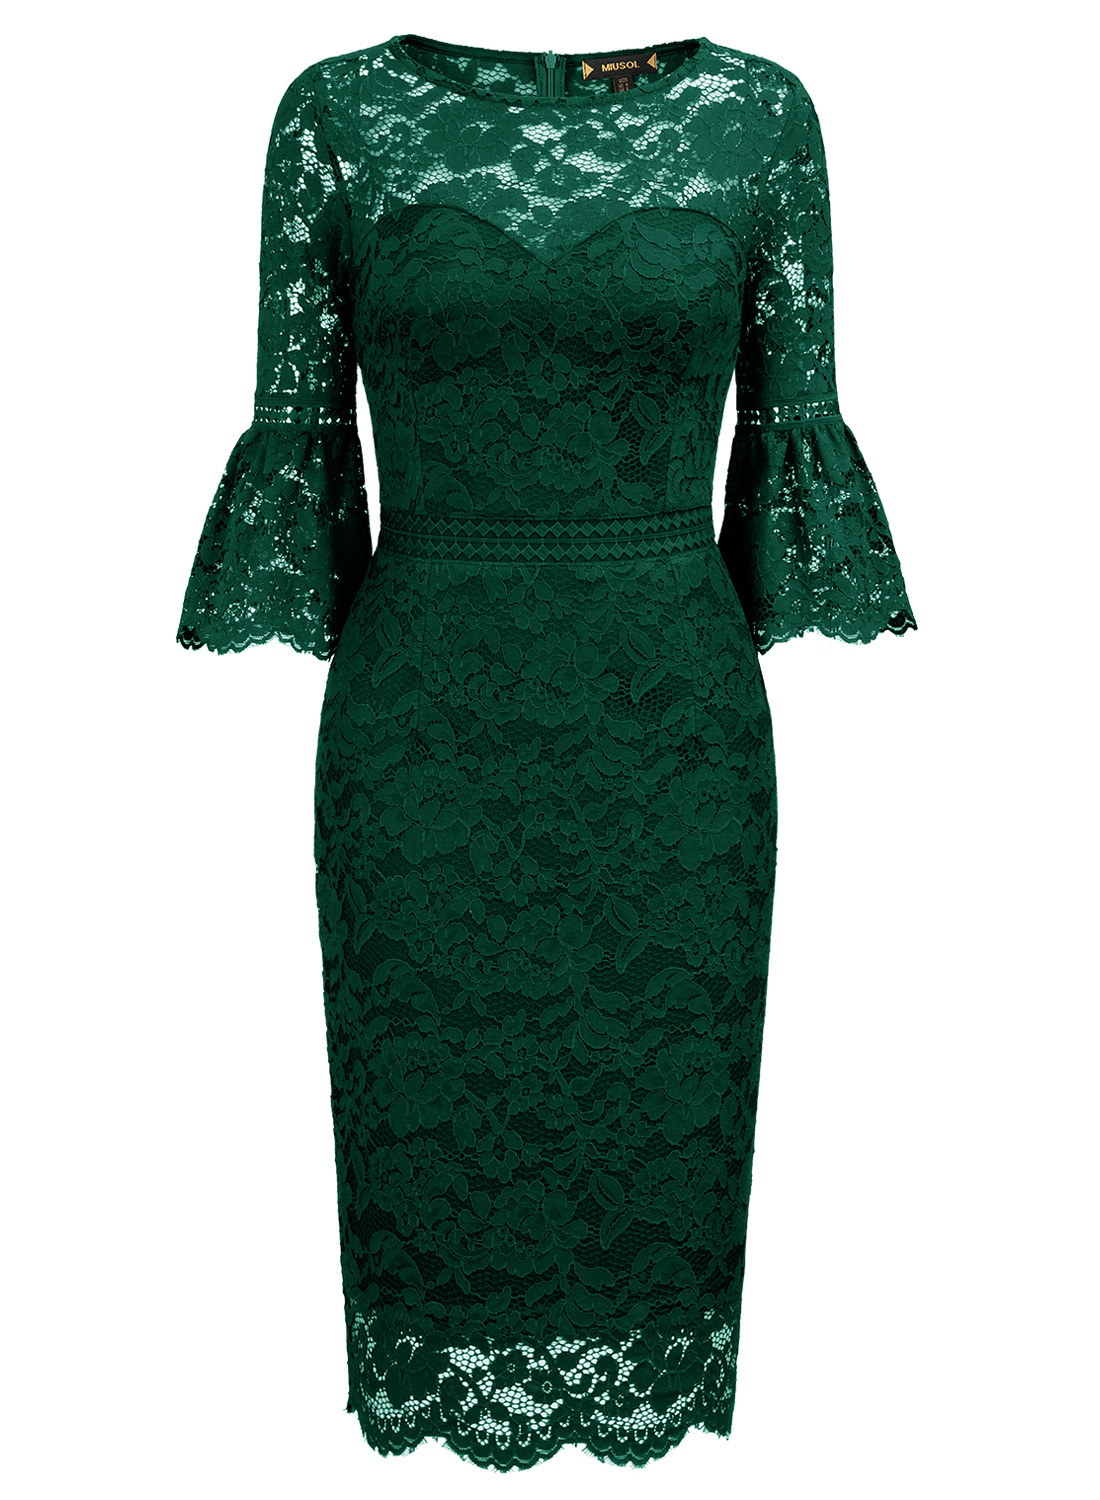 Middle Sleeve Ruffle Lace Bodycon